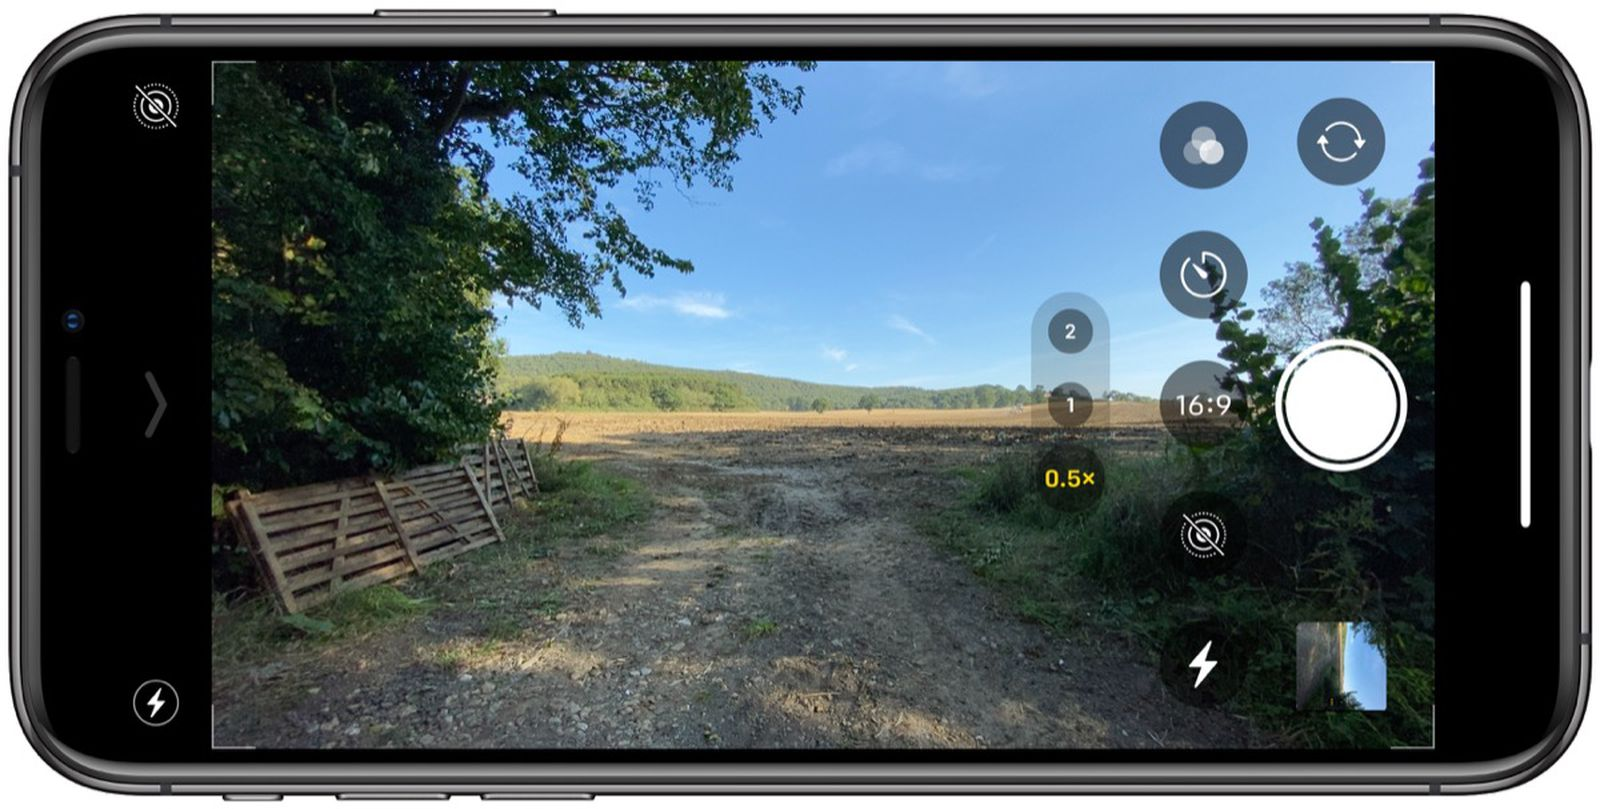 How To Select Camera Aspect Ratio On Iphone 11 And Iphone 11 Pro Macrumors